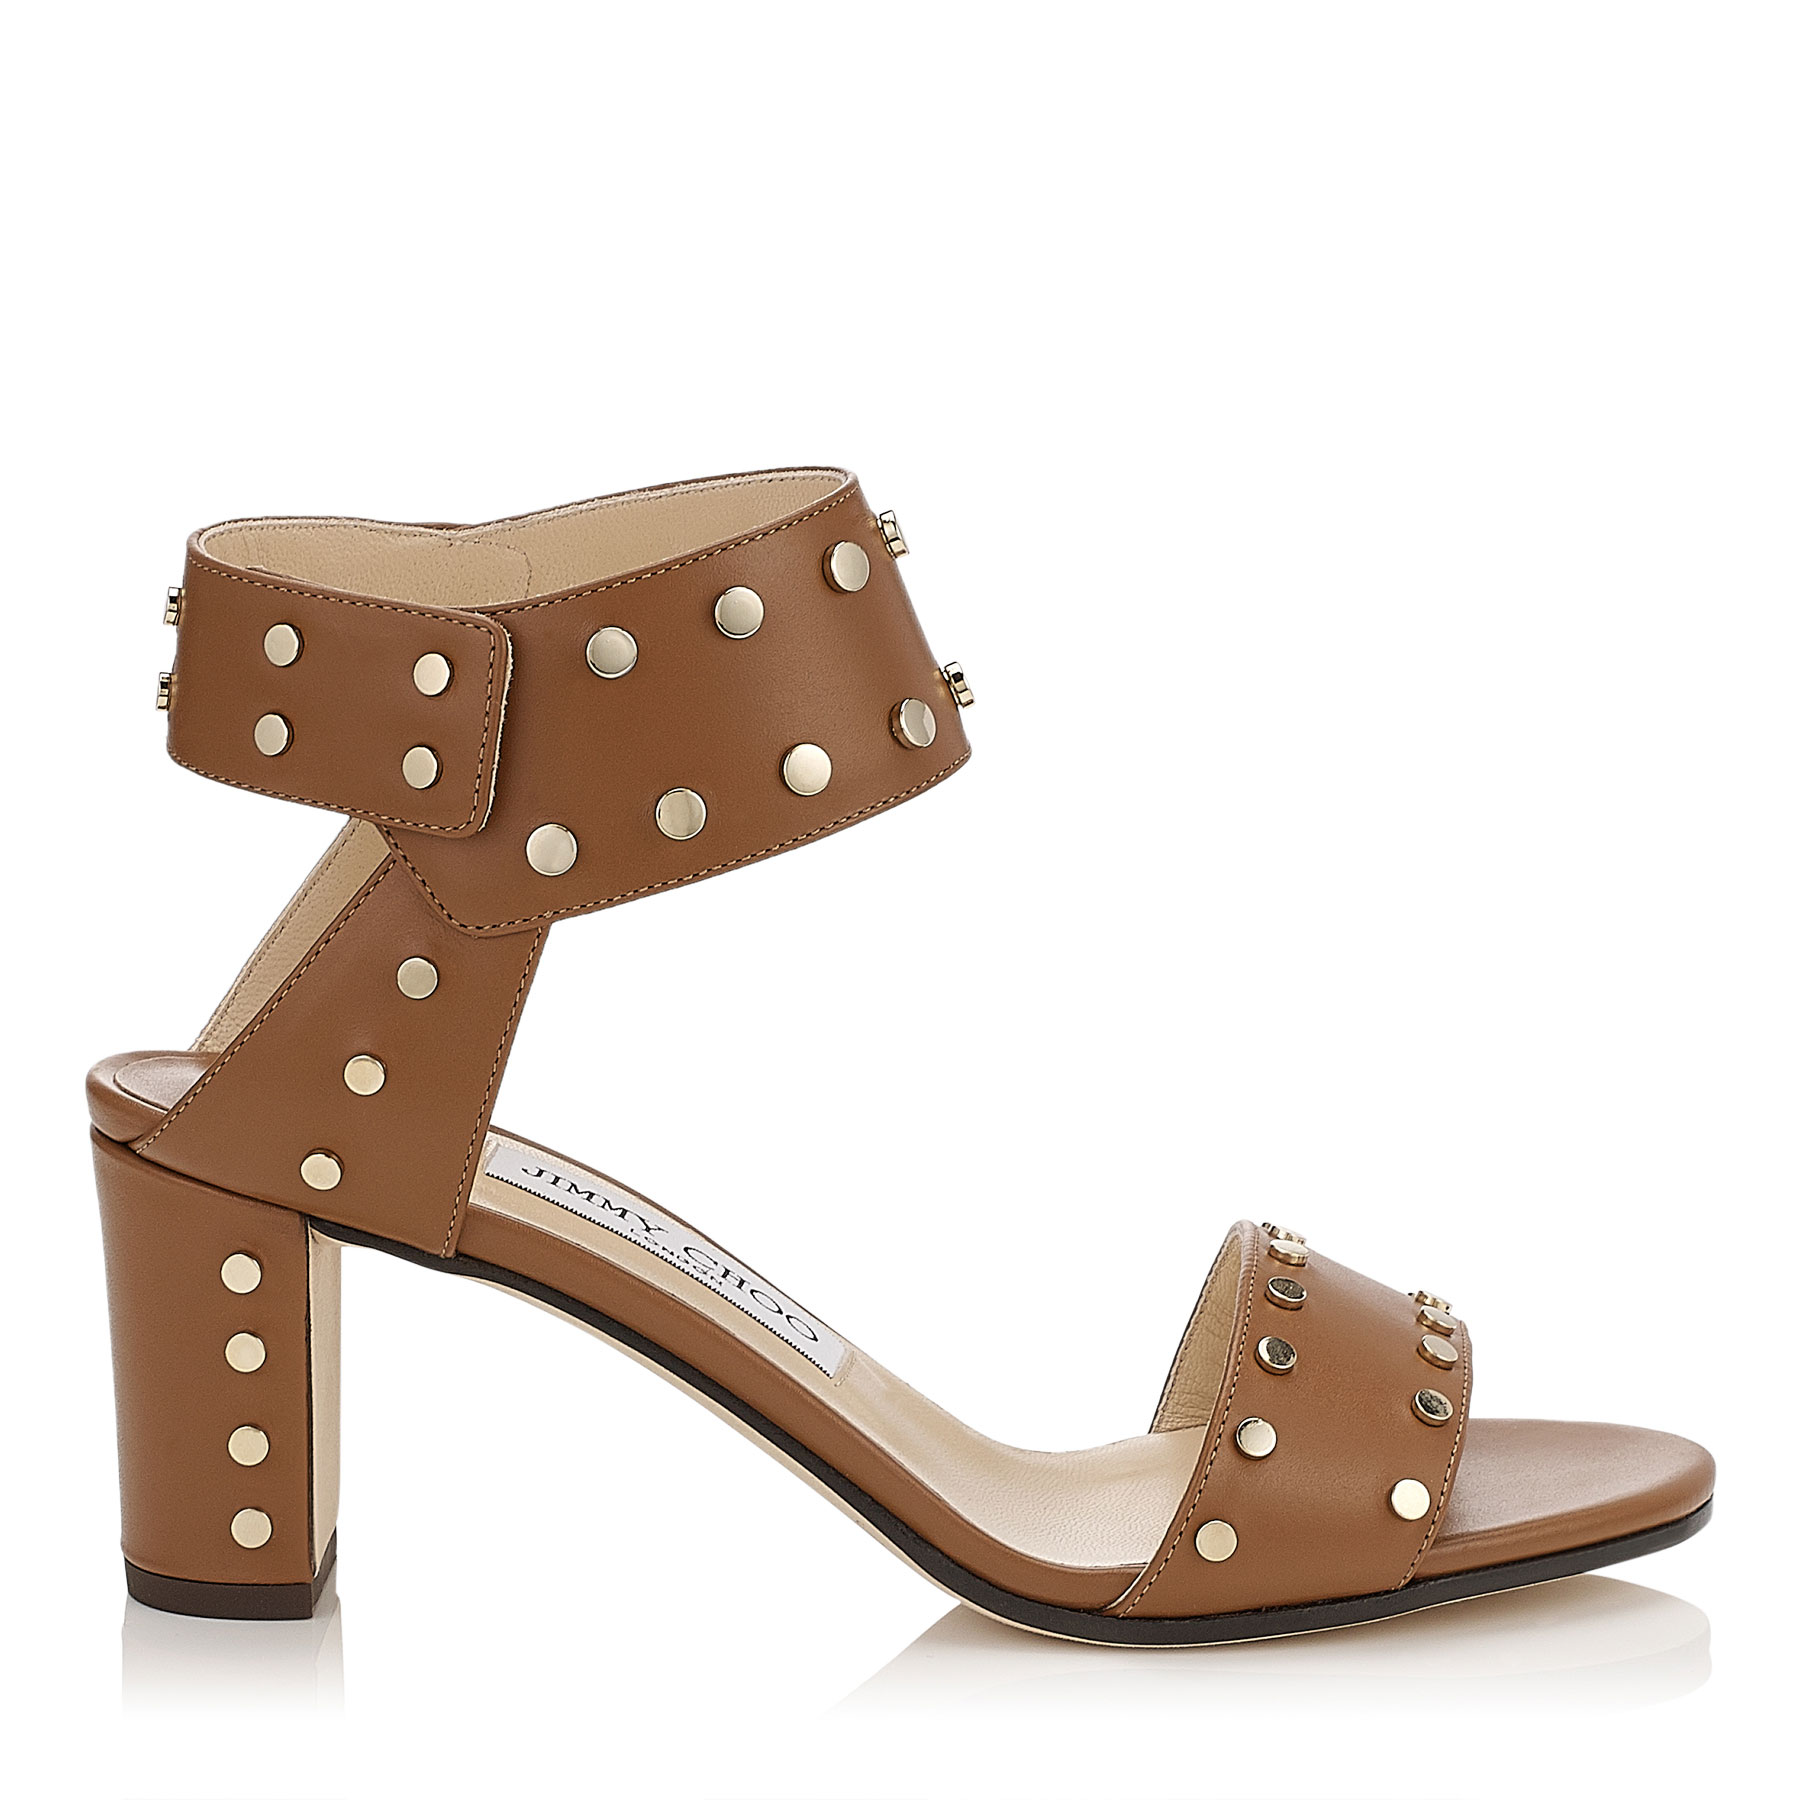 VETO 65 Canyon Shiny Leather Sandals with Gold Studs